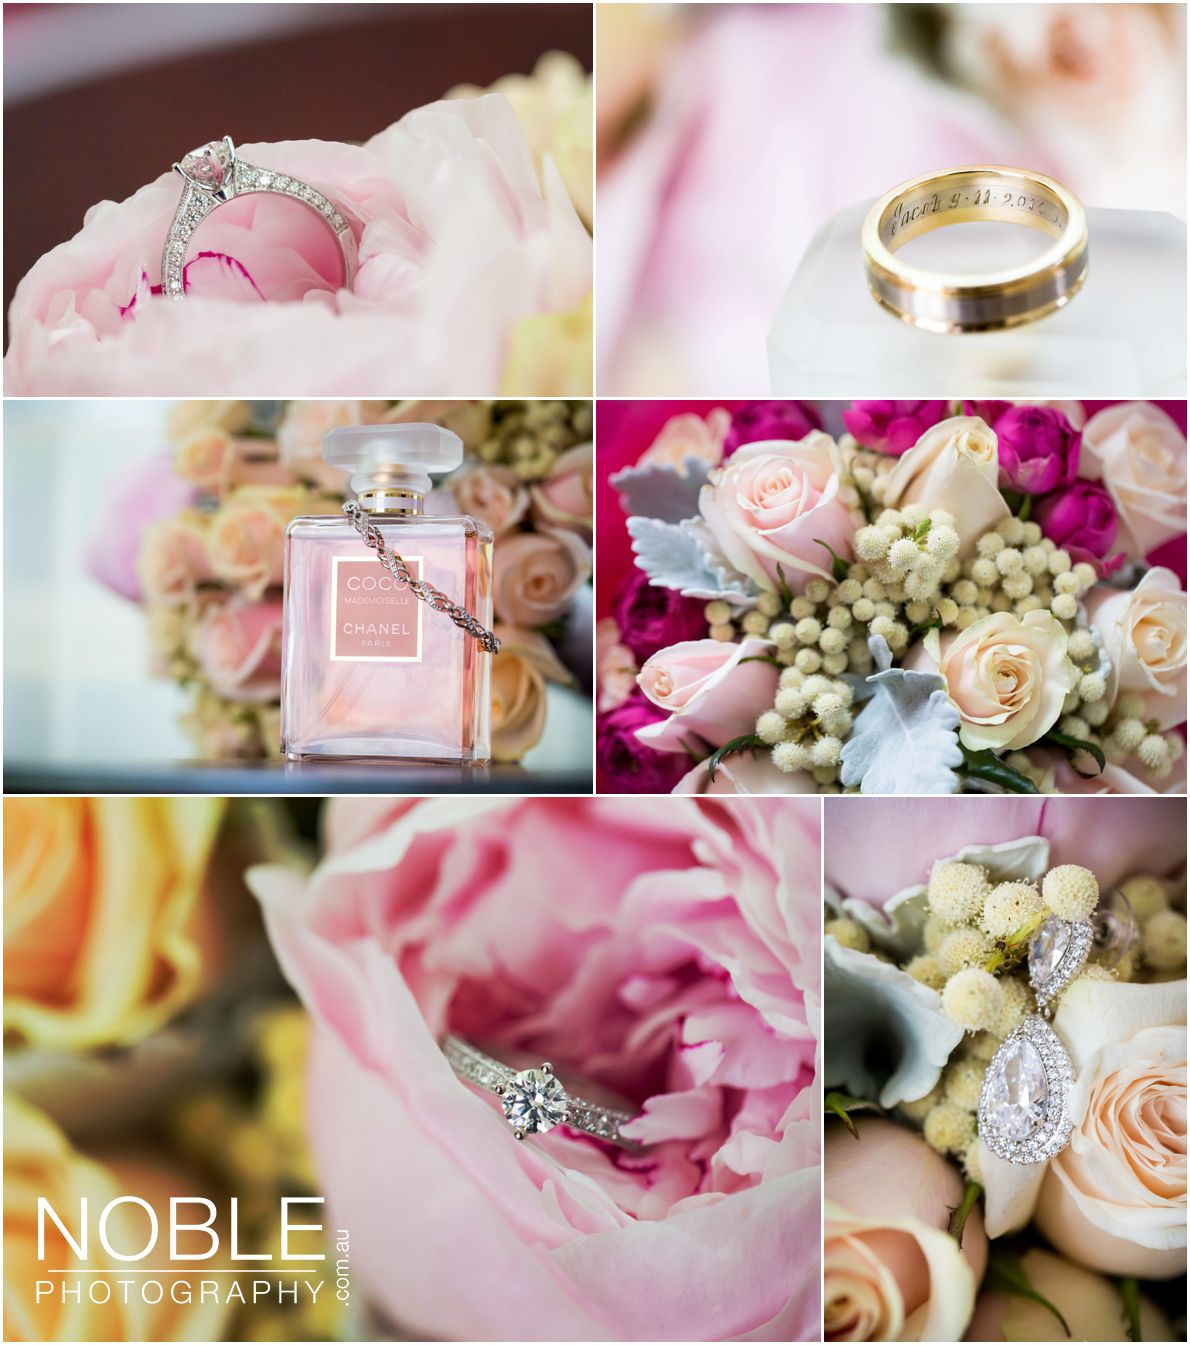 Bridal Details with rings